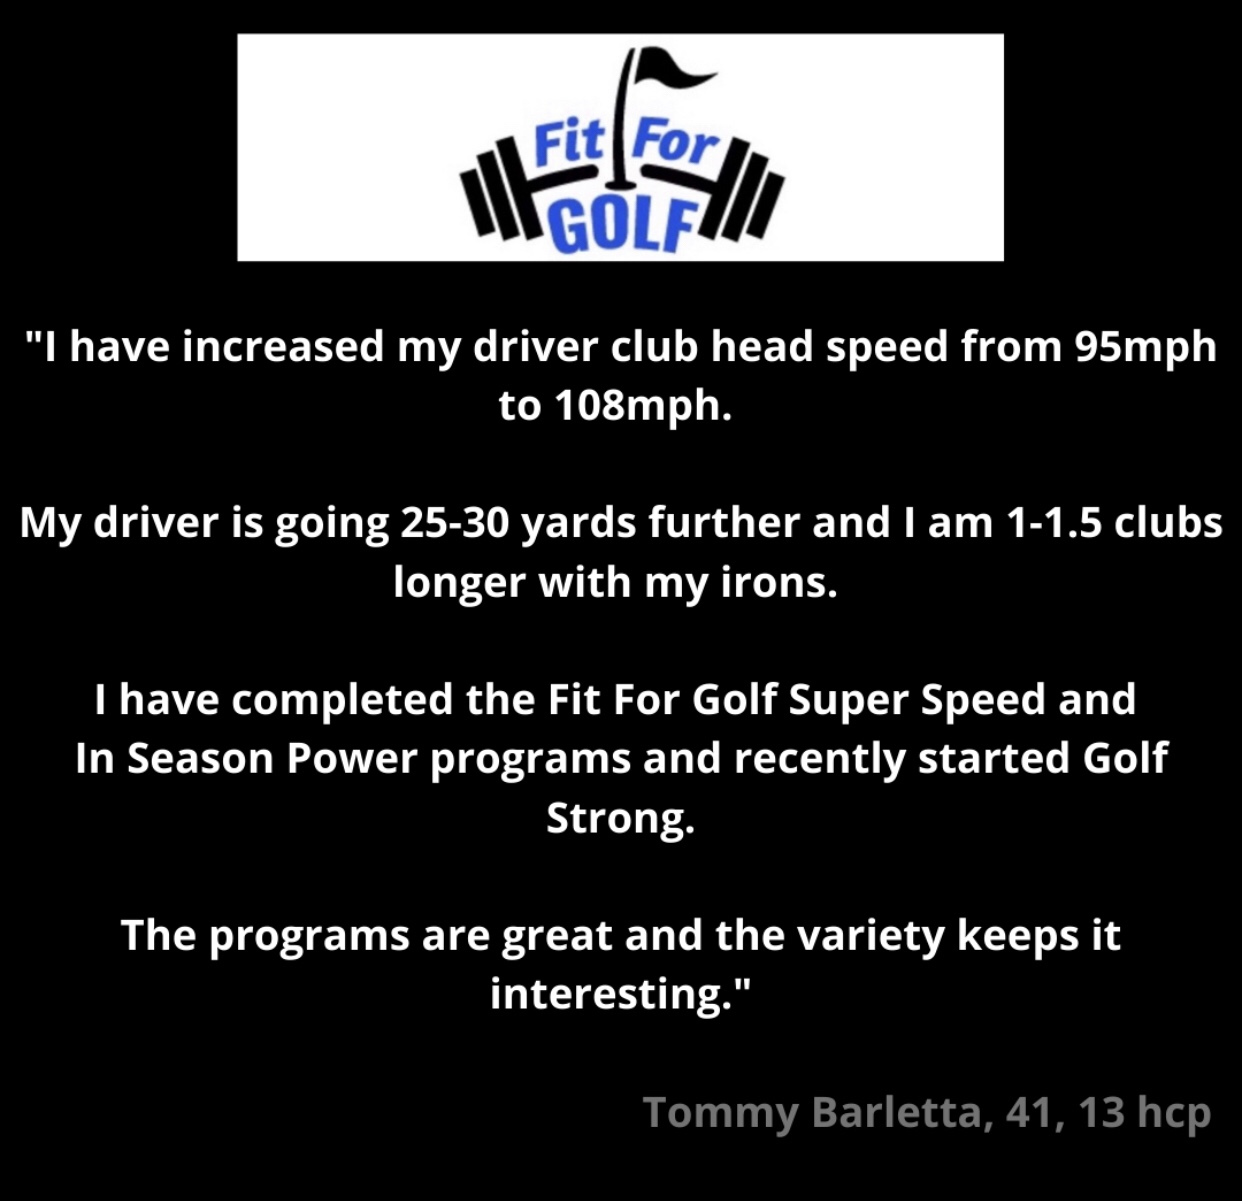 Club Head Speed Is Increased by 13 MPH